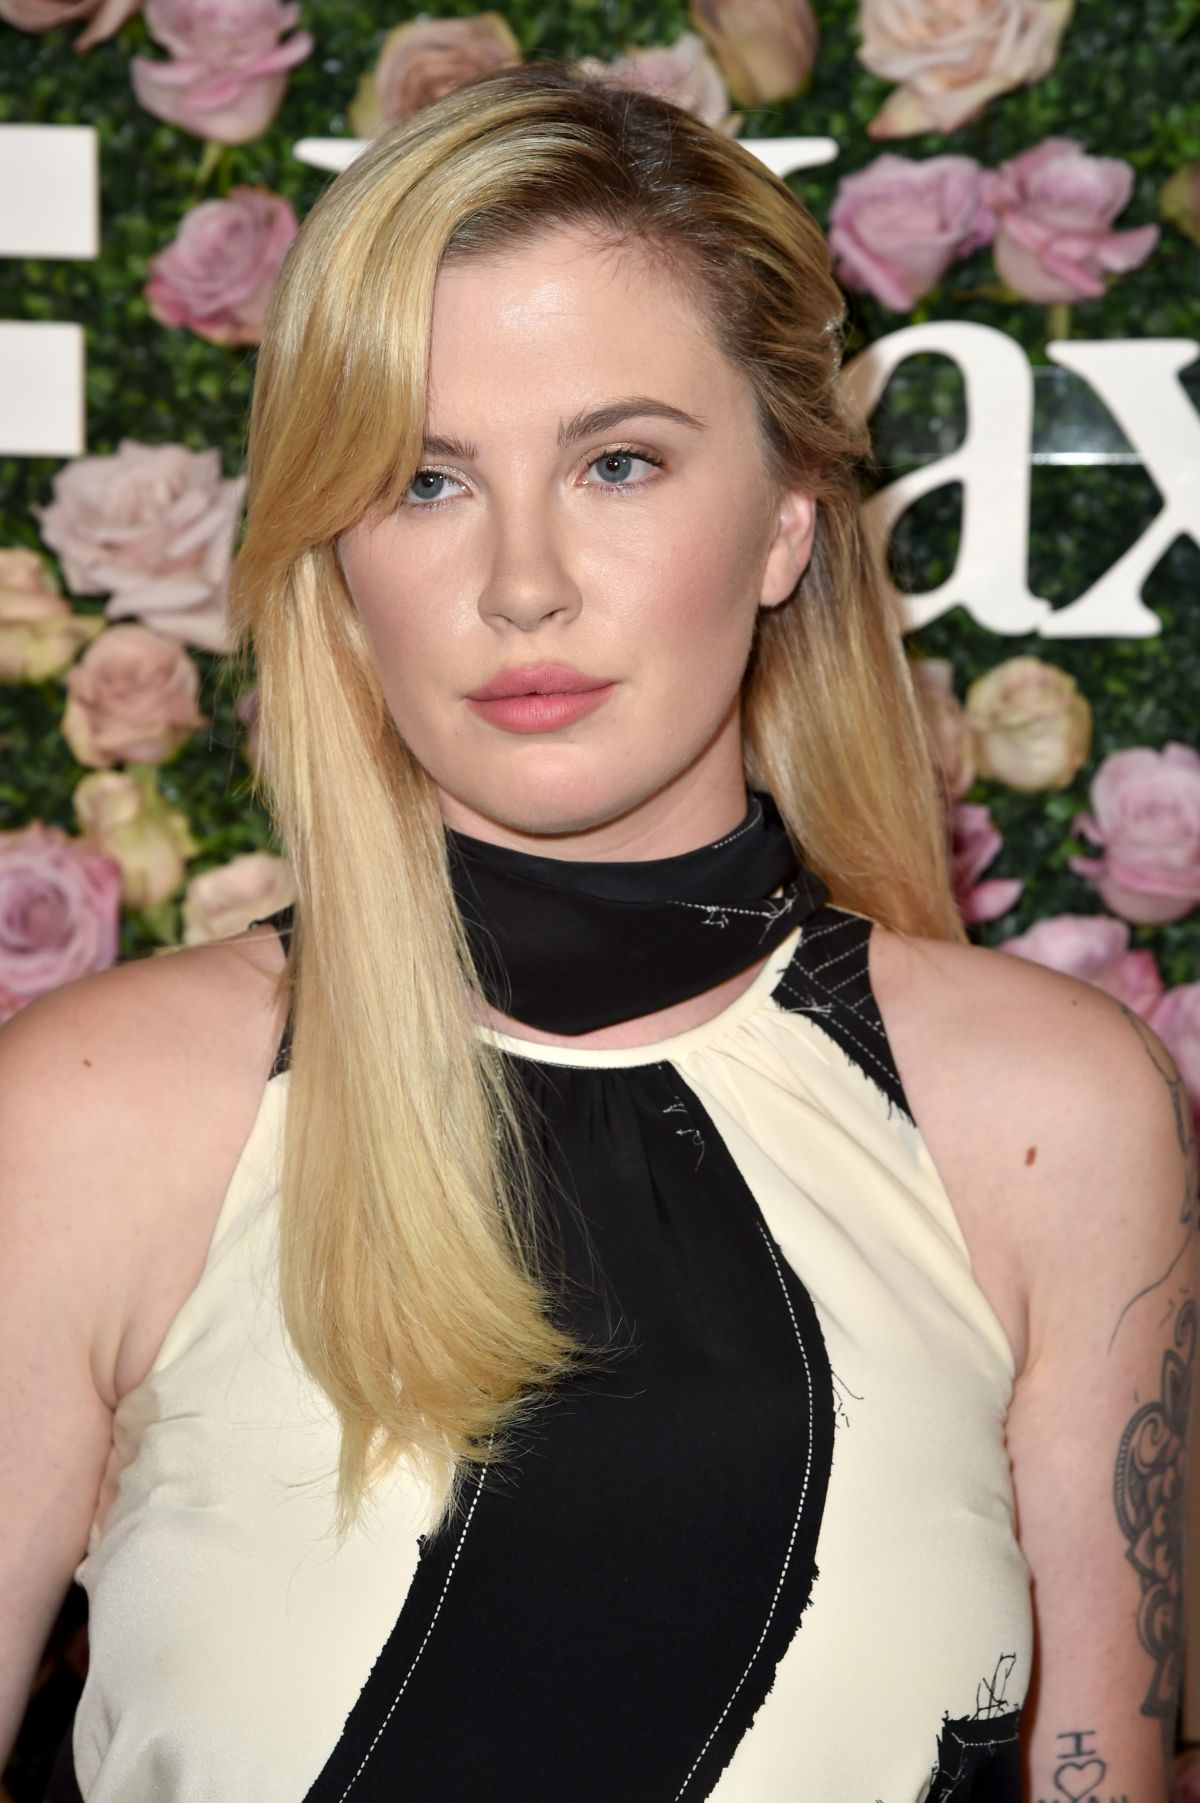 084d40645097b IRELAND BALDWIN at Women in Film Max Mara Face of the Future Reception in  Los Angeles